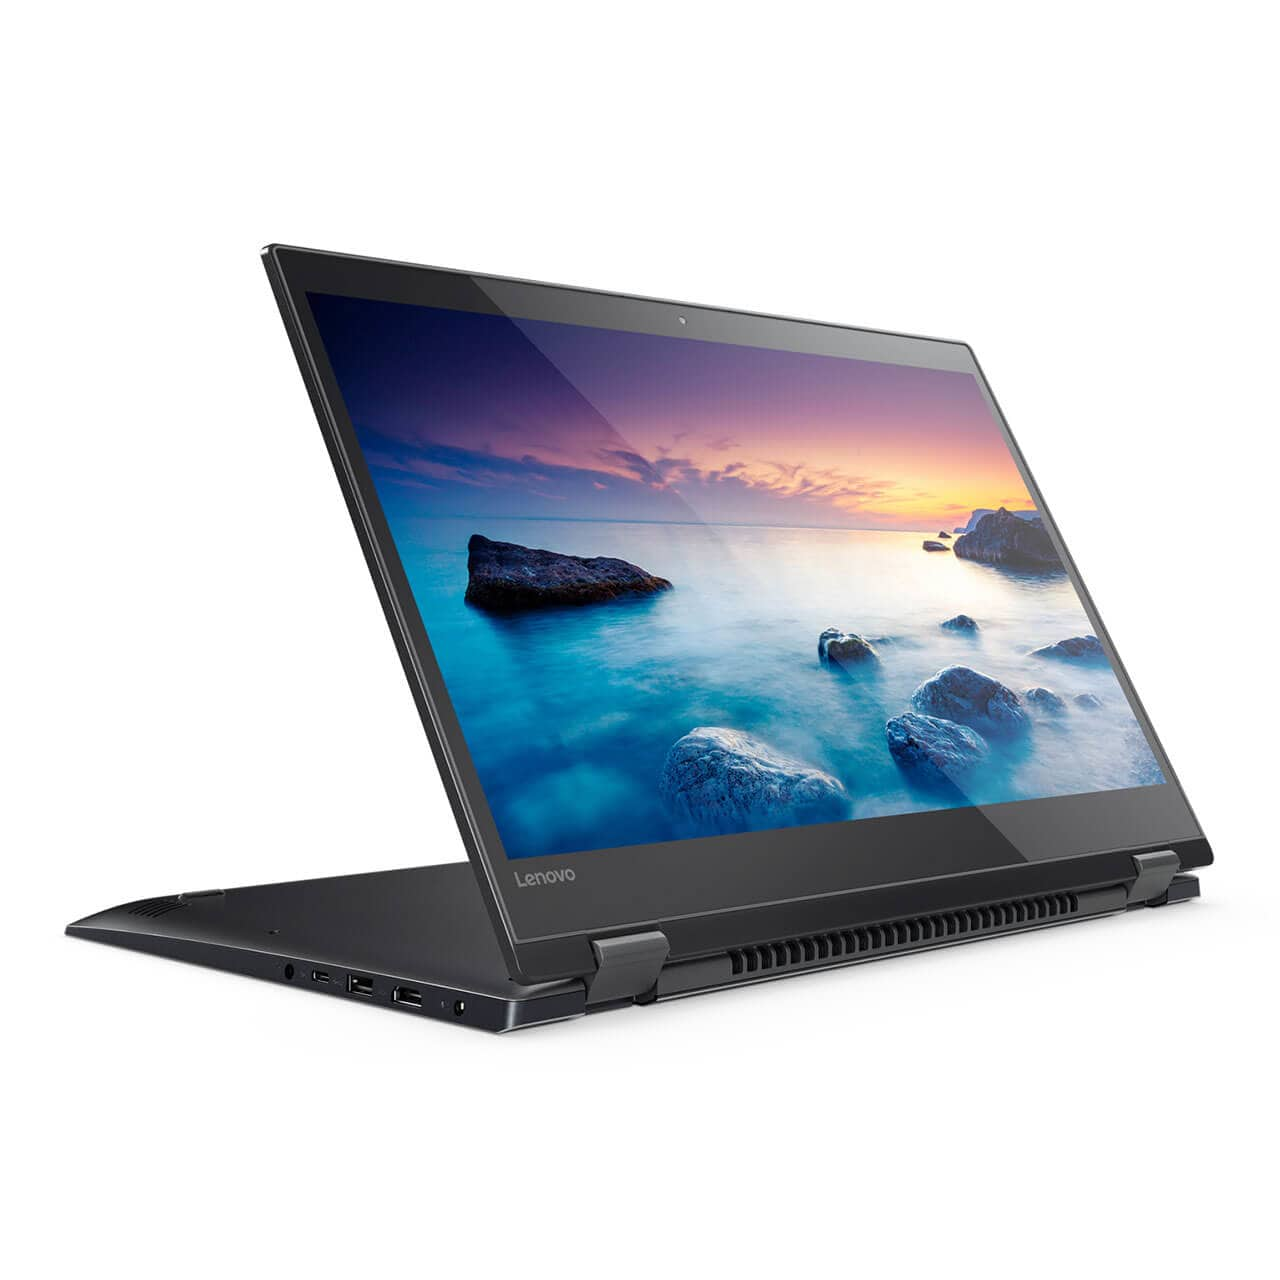 "Lenovo Flex 15, 15.6"", i5-8250U, 8 GB RAM, 500GB 5400 RPM, Win 10 Home 64 1"